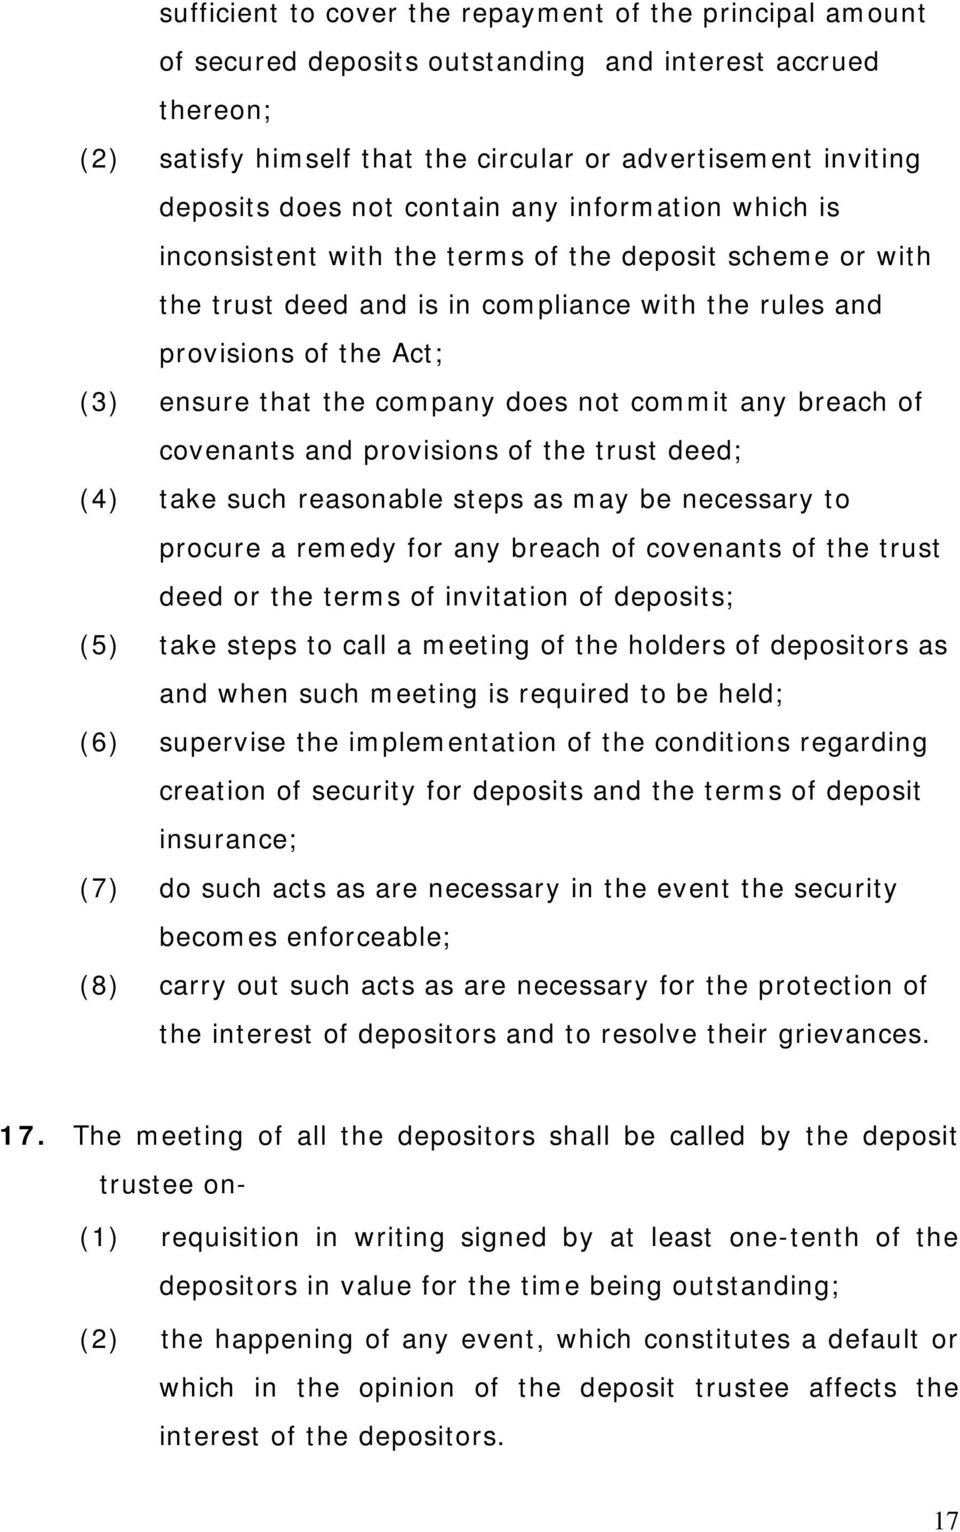 company does not commit any breach of covenants and provisions of the trust deed; (4) take such reasonable steps as may be necessary to procure a remedy for any breach of covenants of the trust deed